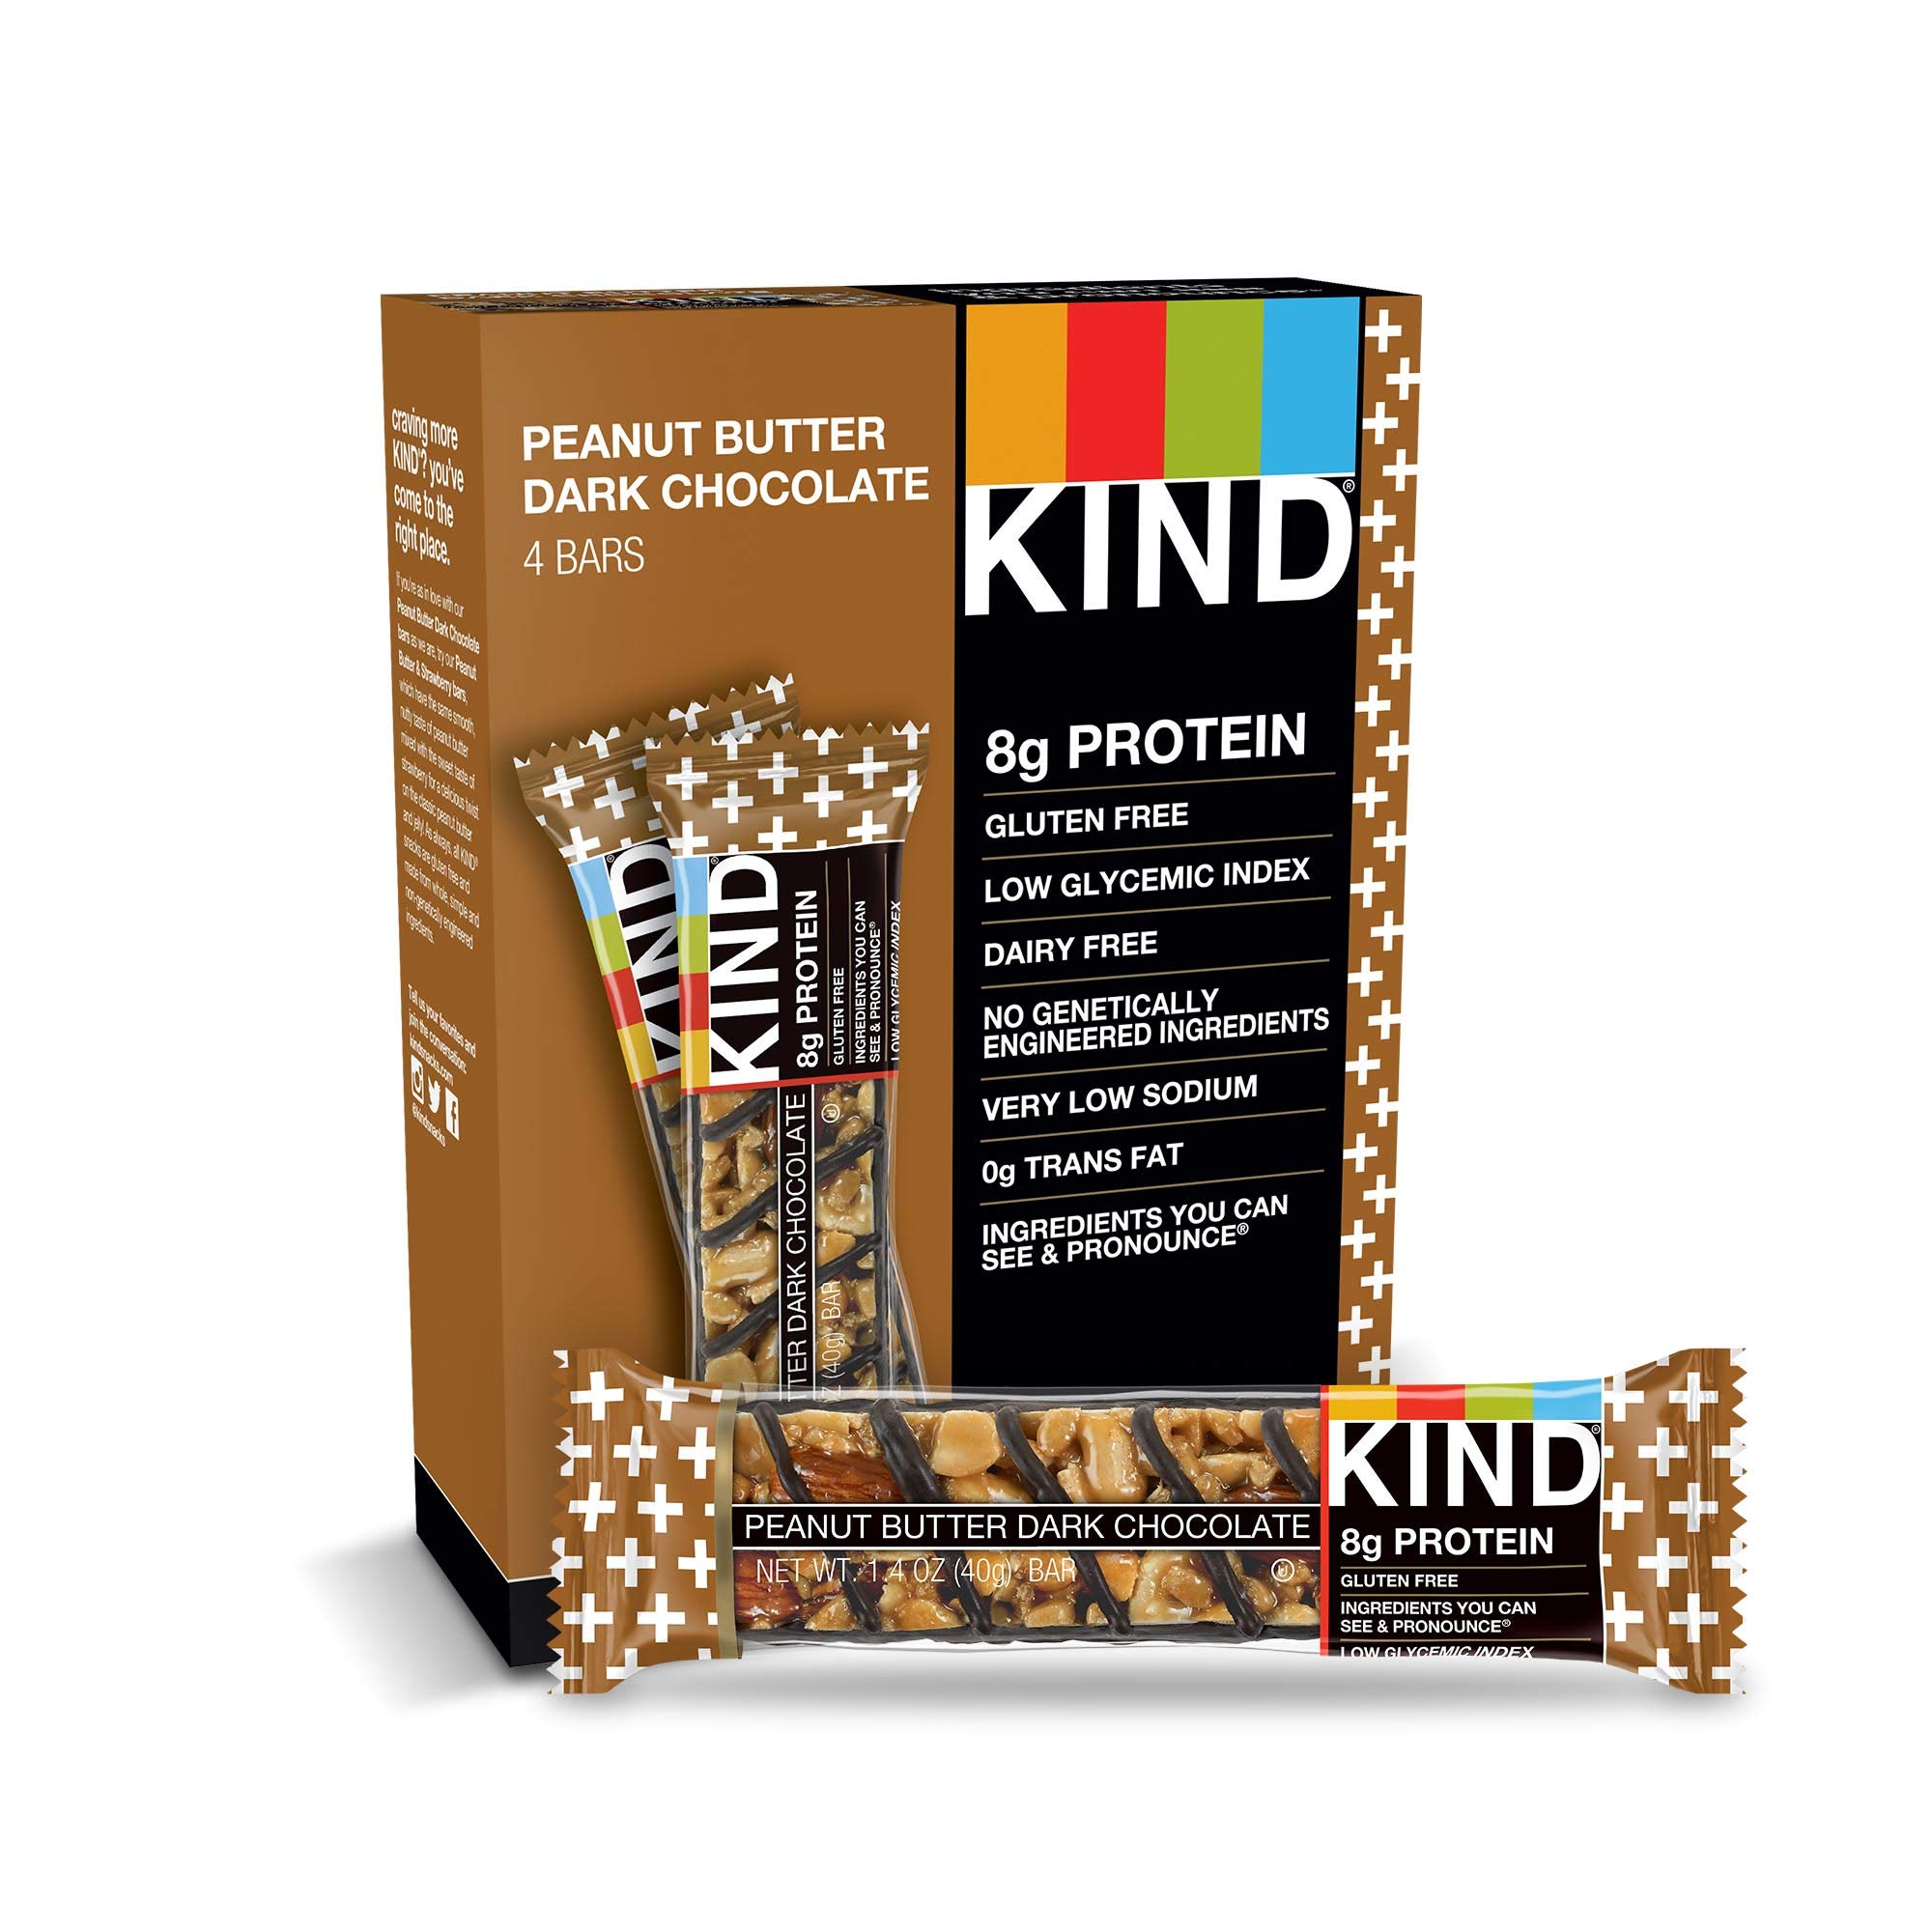 KIND Bars, Peanut Butter Dark Chocolate, 8g Protein, Gluten Free, 1.4 oz Bars, 48 Count by KIND